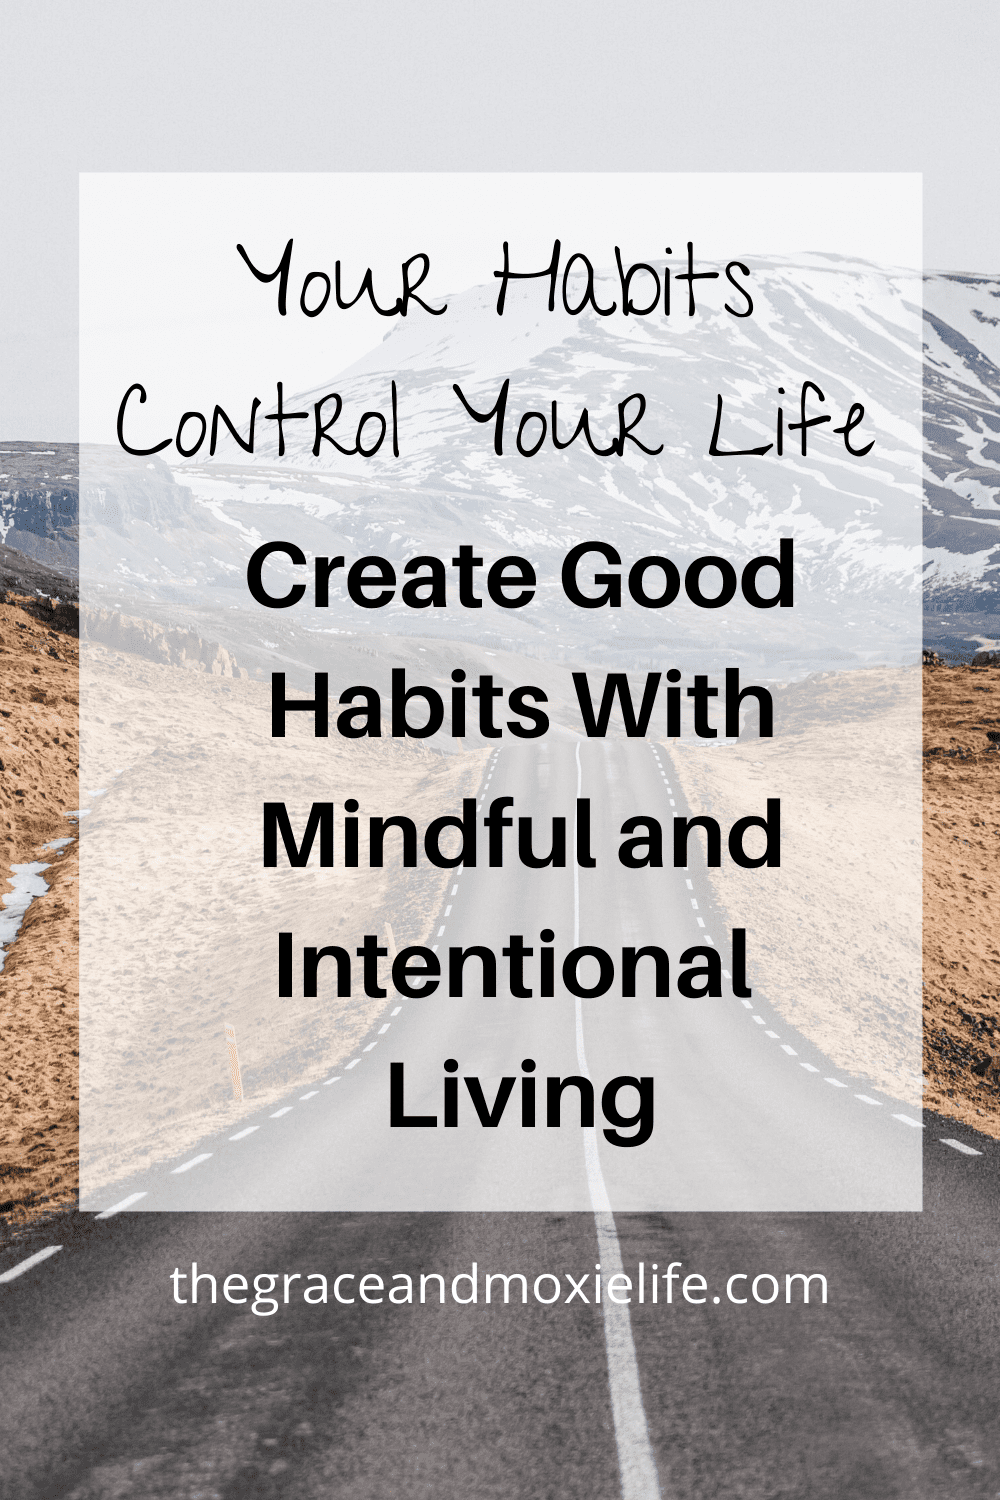 Your Habits Control Your Life -- Create Good Habits With Mindful and Intentional Living | The Grace and Moxie Life